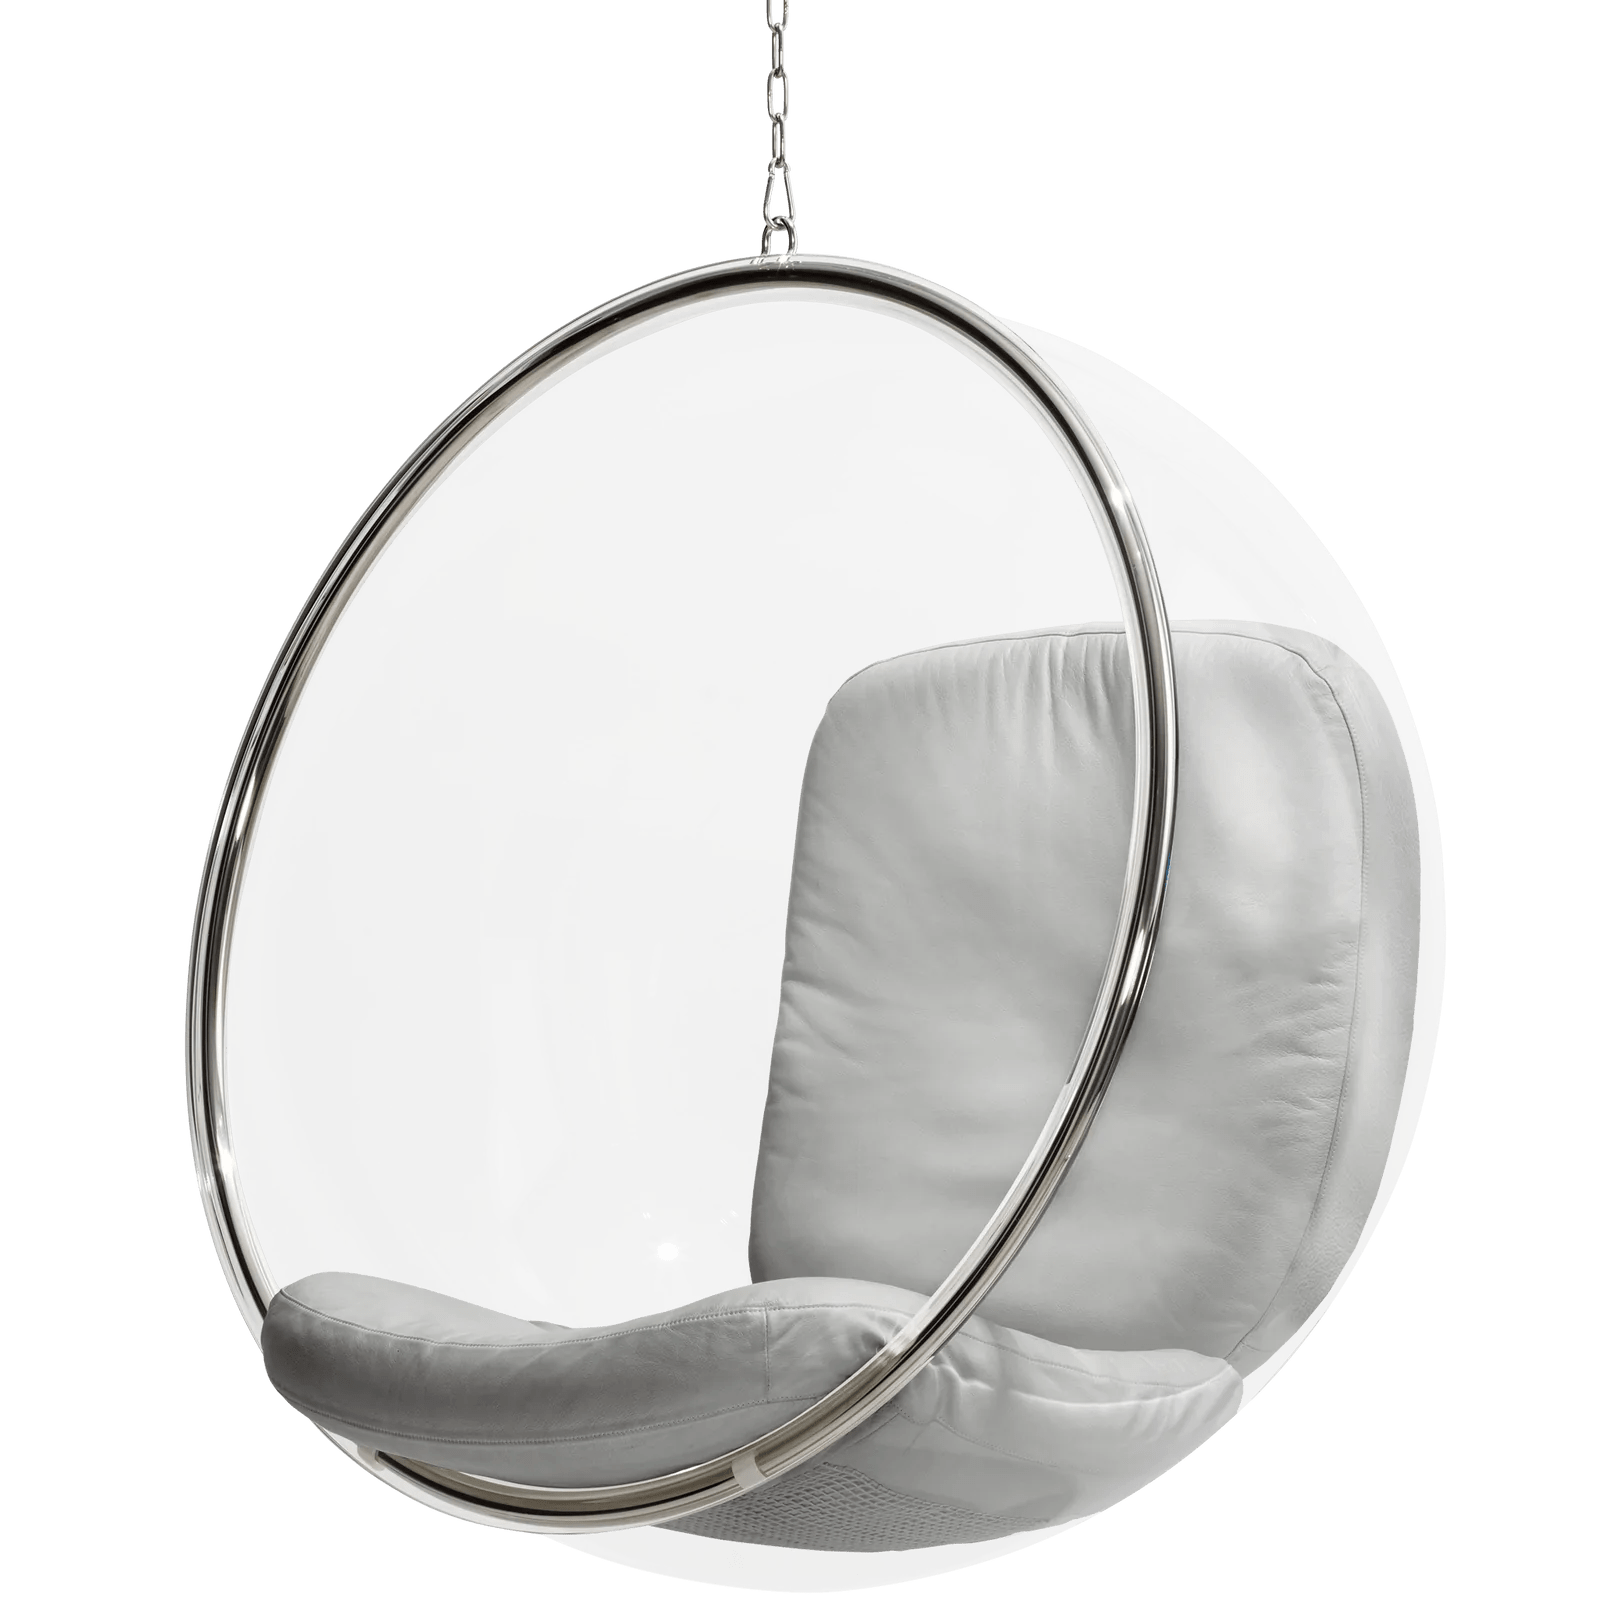 cheap bubble chair one person swing by eero aarnio originals